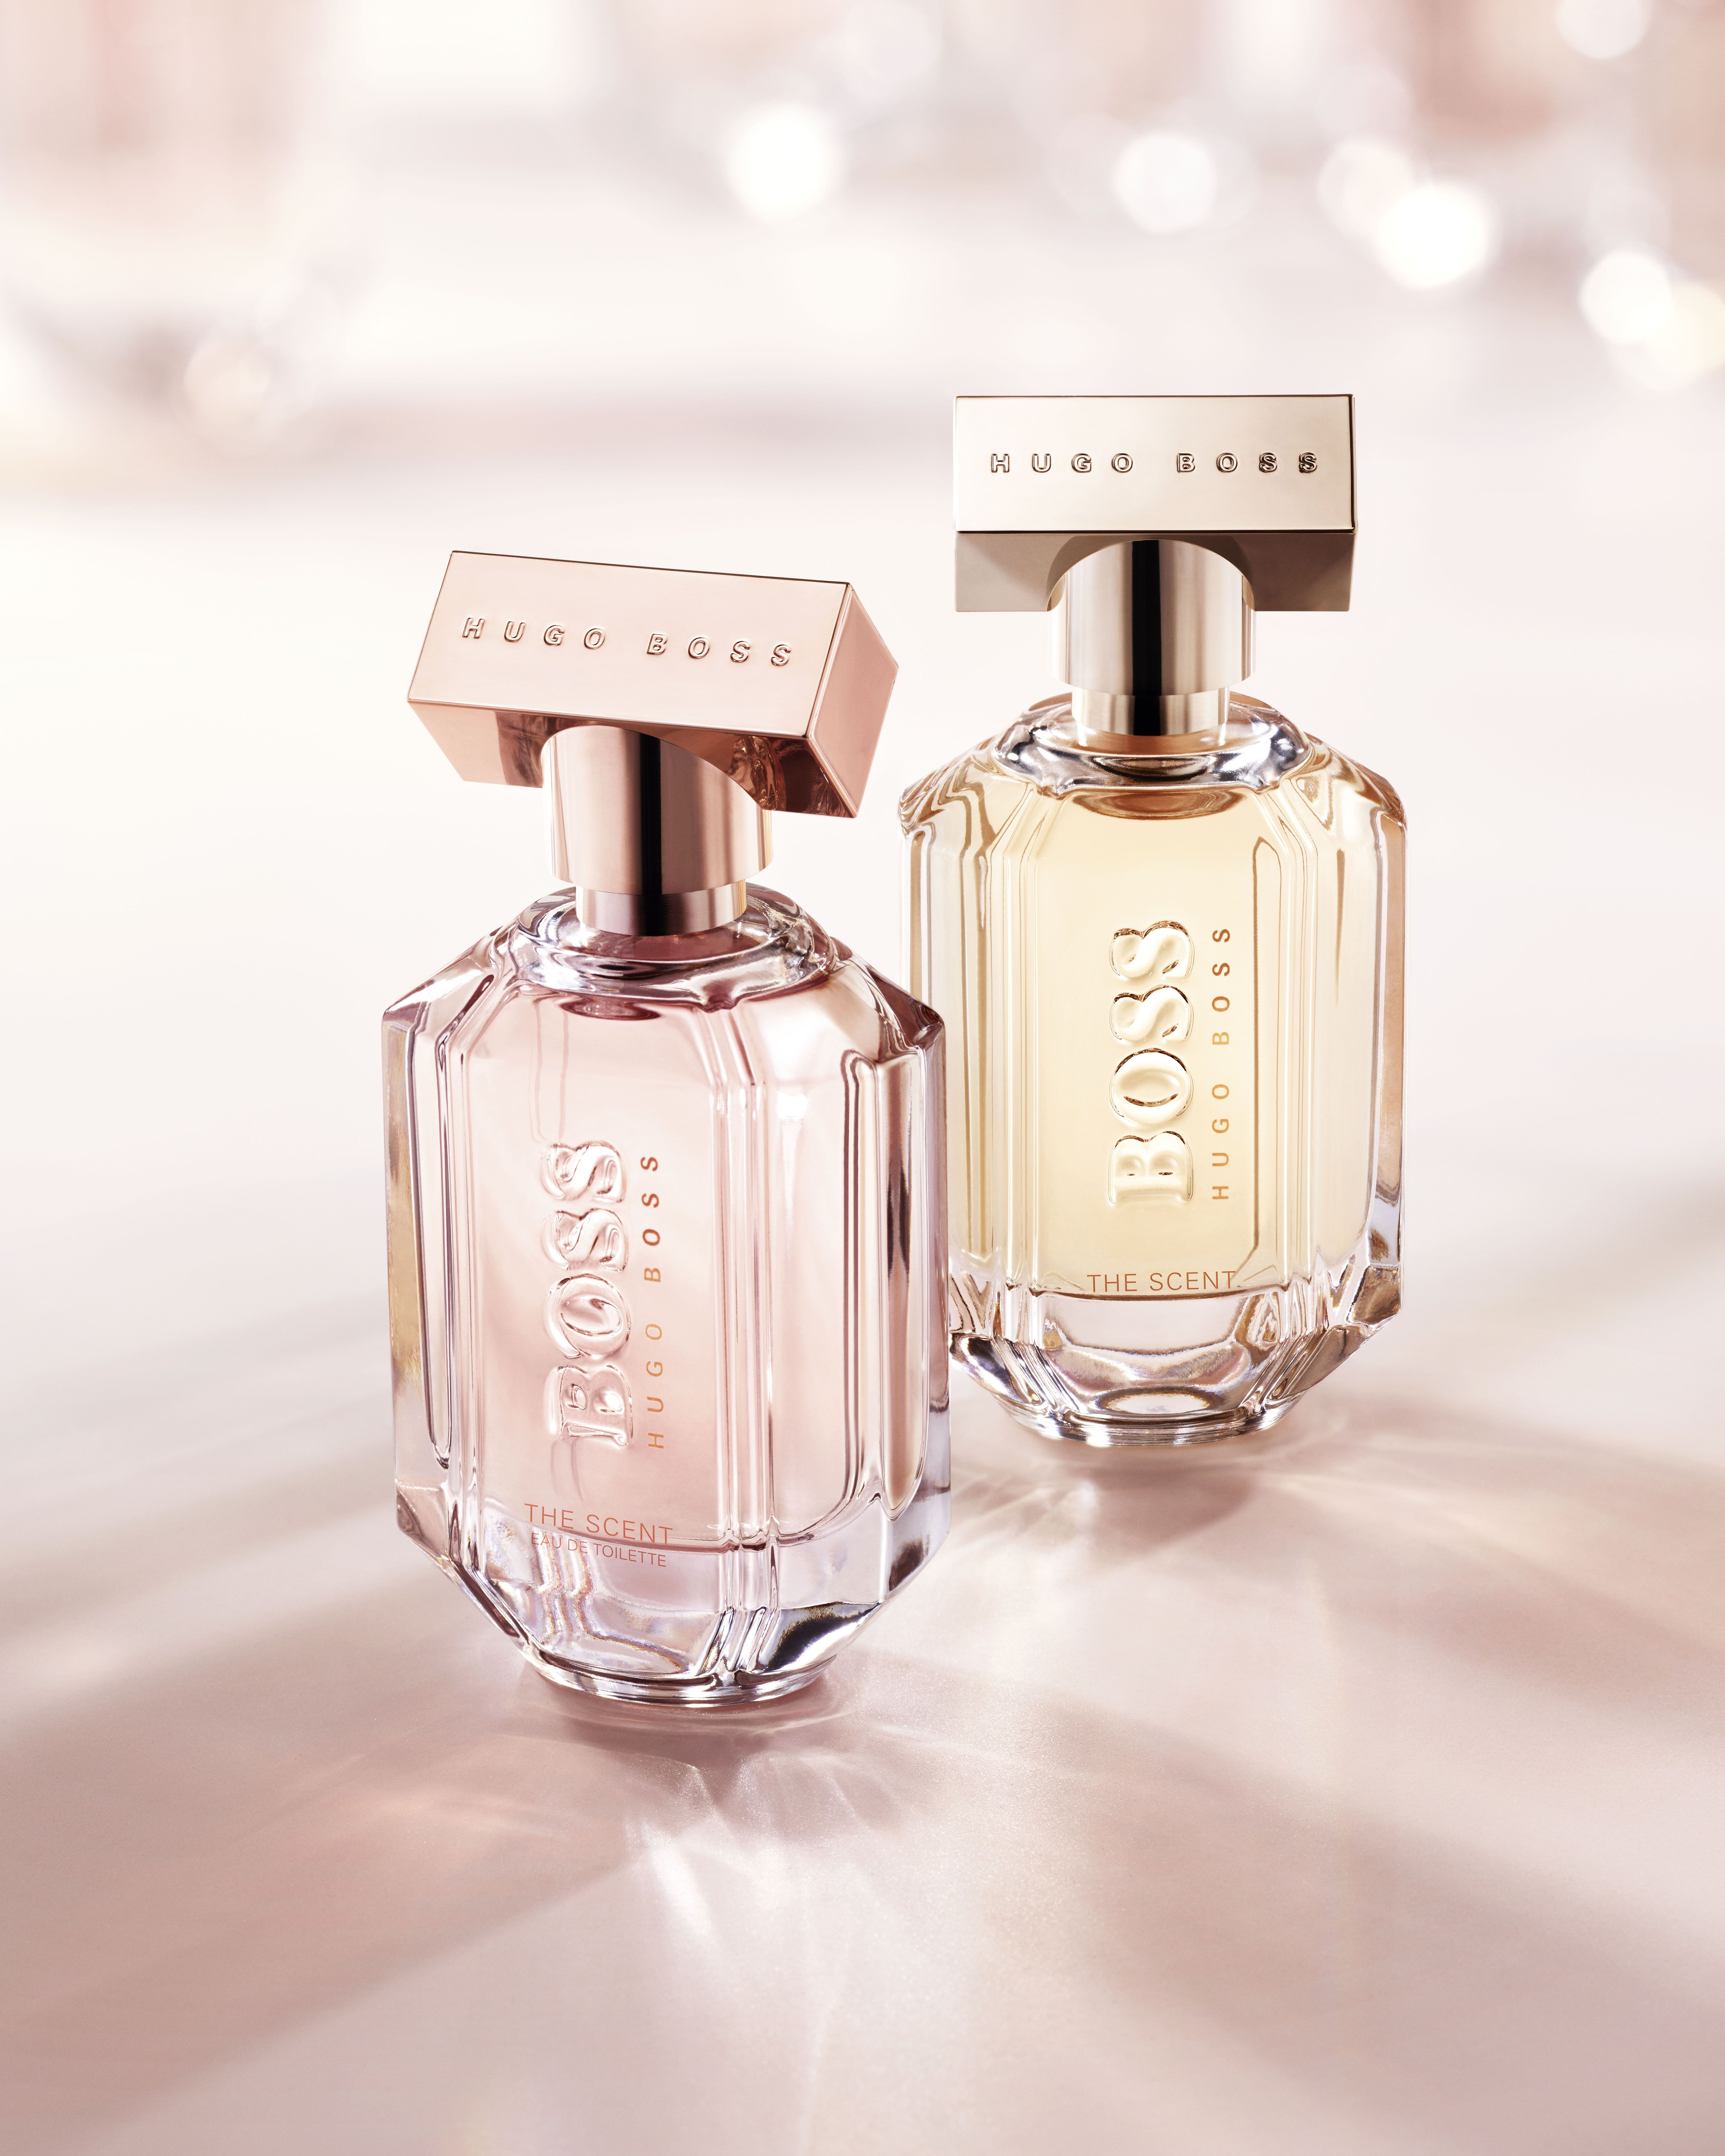 ae5e893d36eab Soft yet powerful: introducing the lighter version of BOSS The Scent for her:  an eau de toilette, featuring new ingredients inspired by springtime # ...